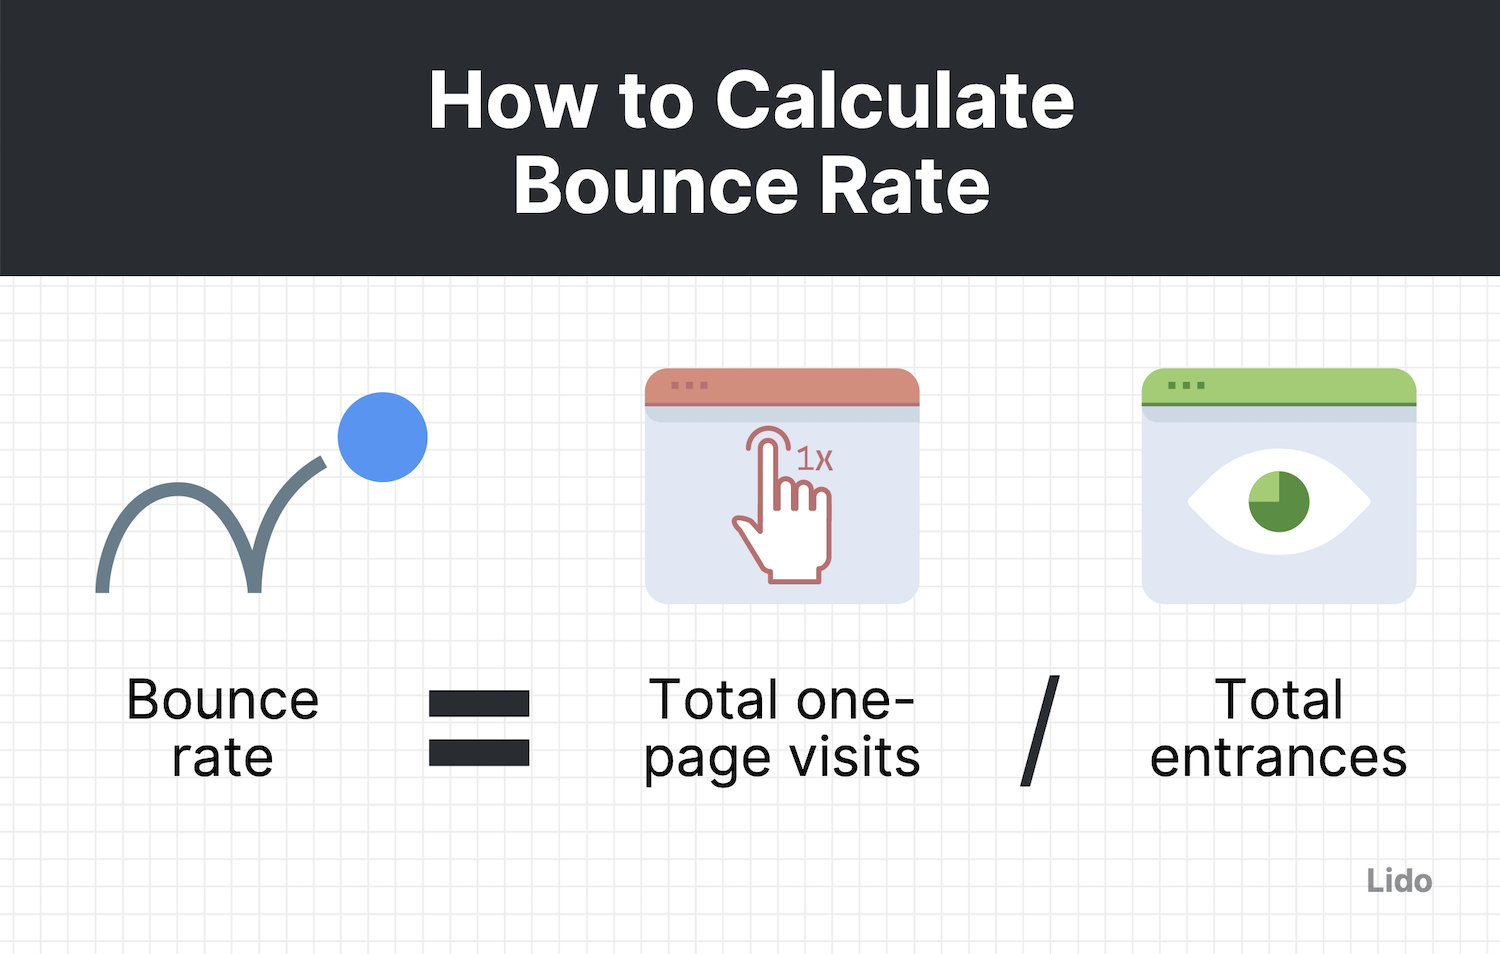 bounce rate equation (= total amount of one-page visits / total amount of entrances) with corresponding icons